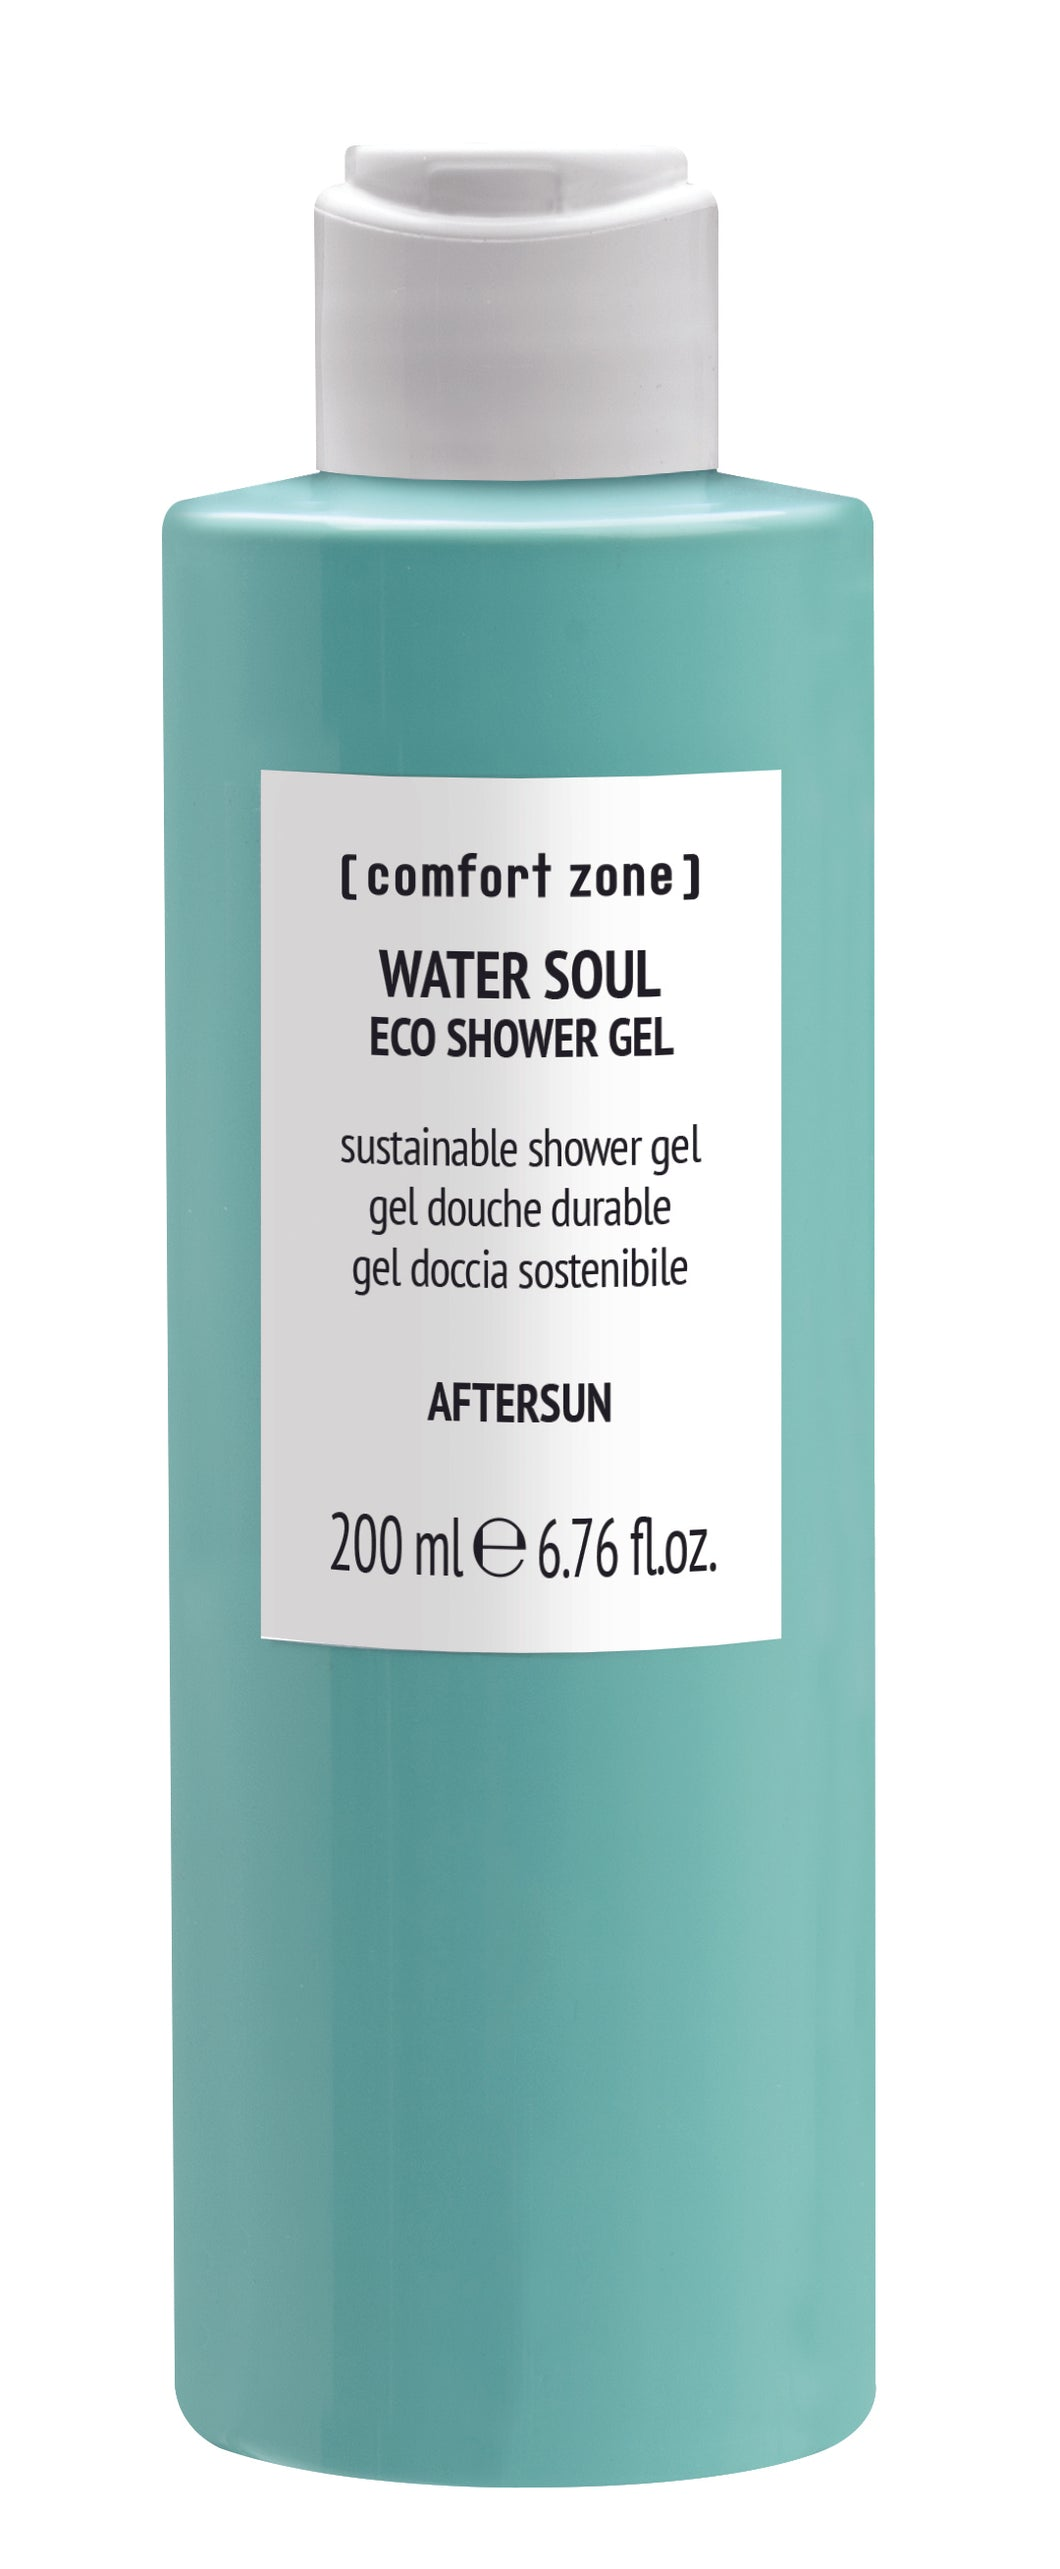 WaterSoulEcoShowerGel_BeautyStudio11.jpg